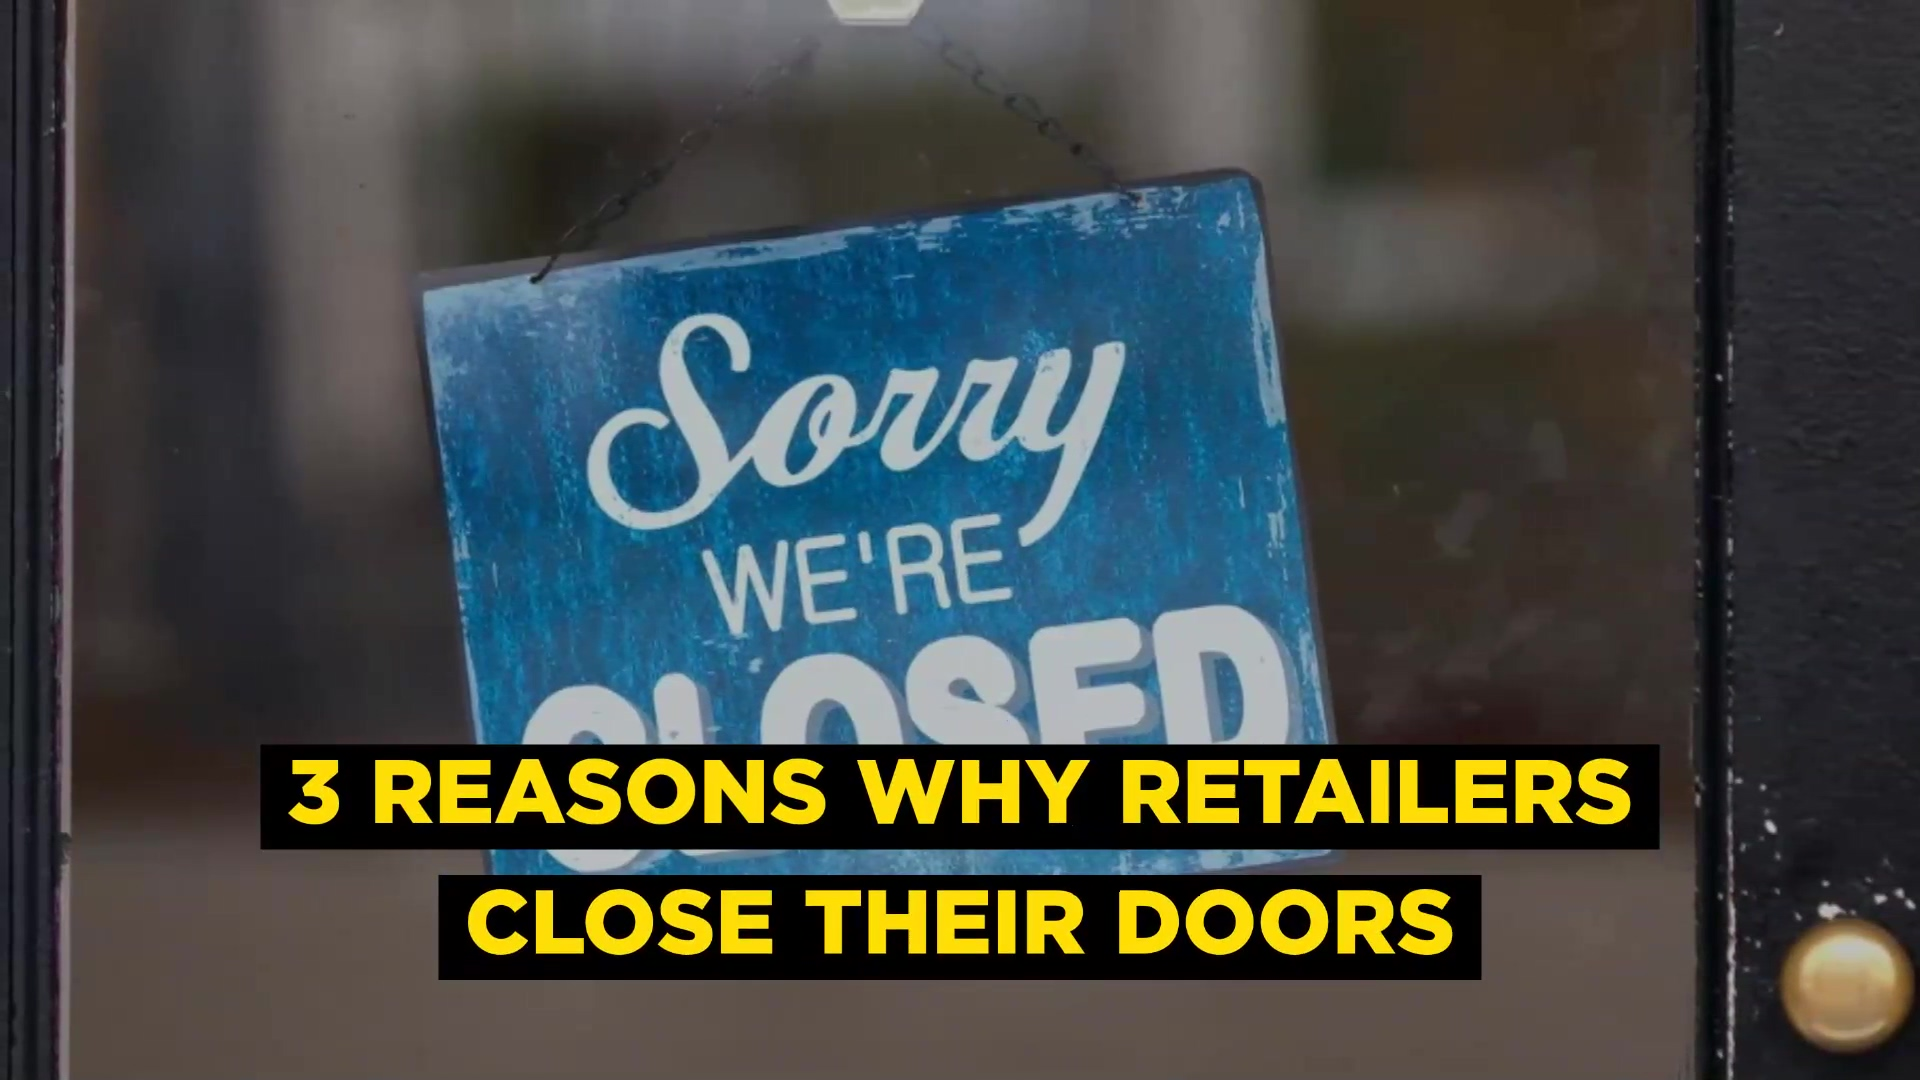 3 Reasons Why Retailers Close Their Doors